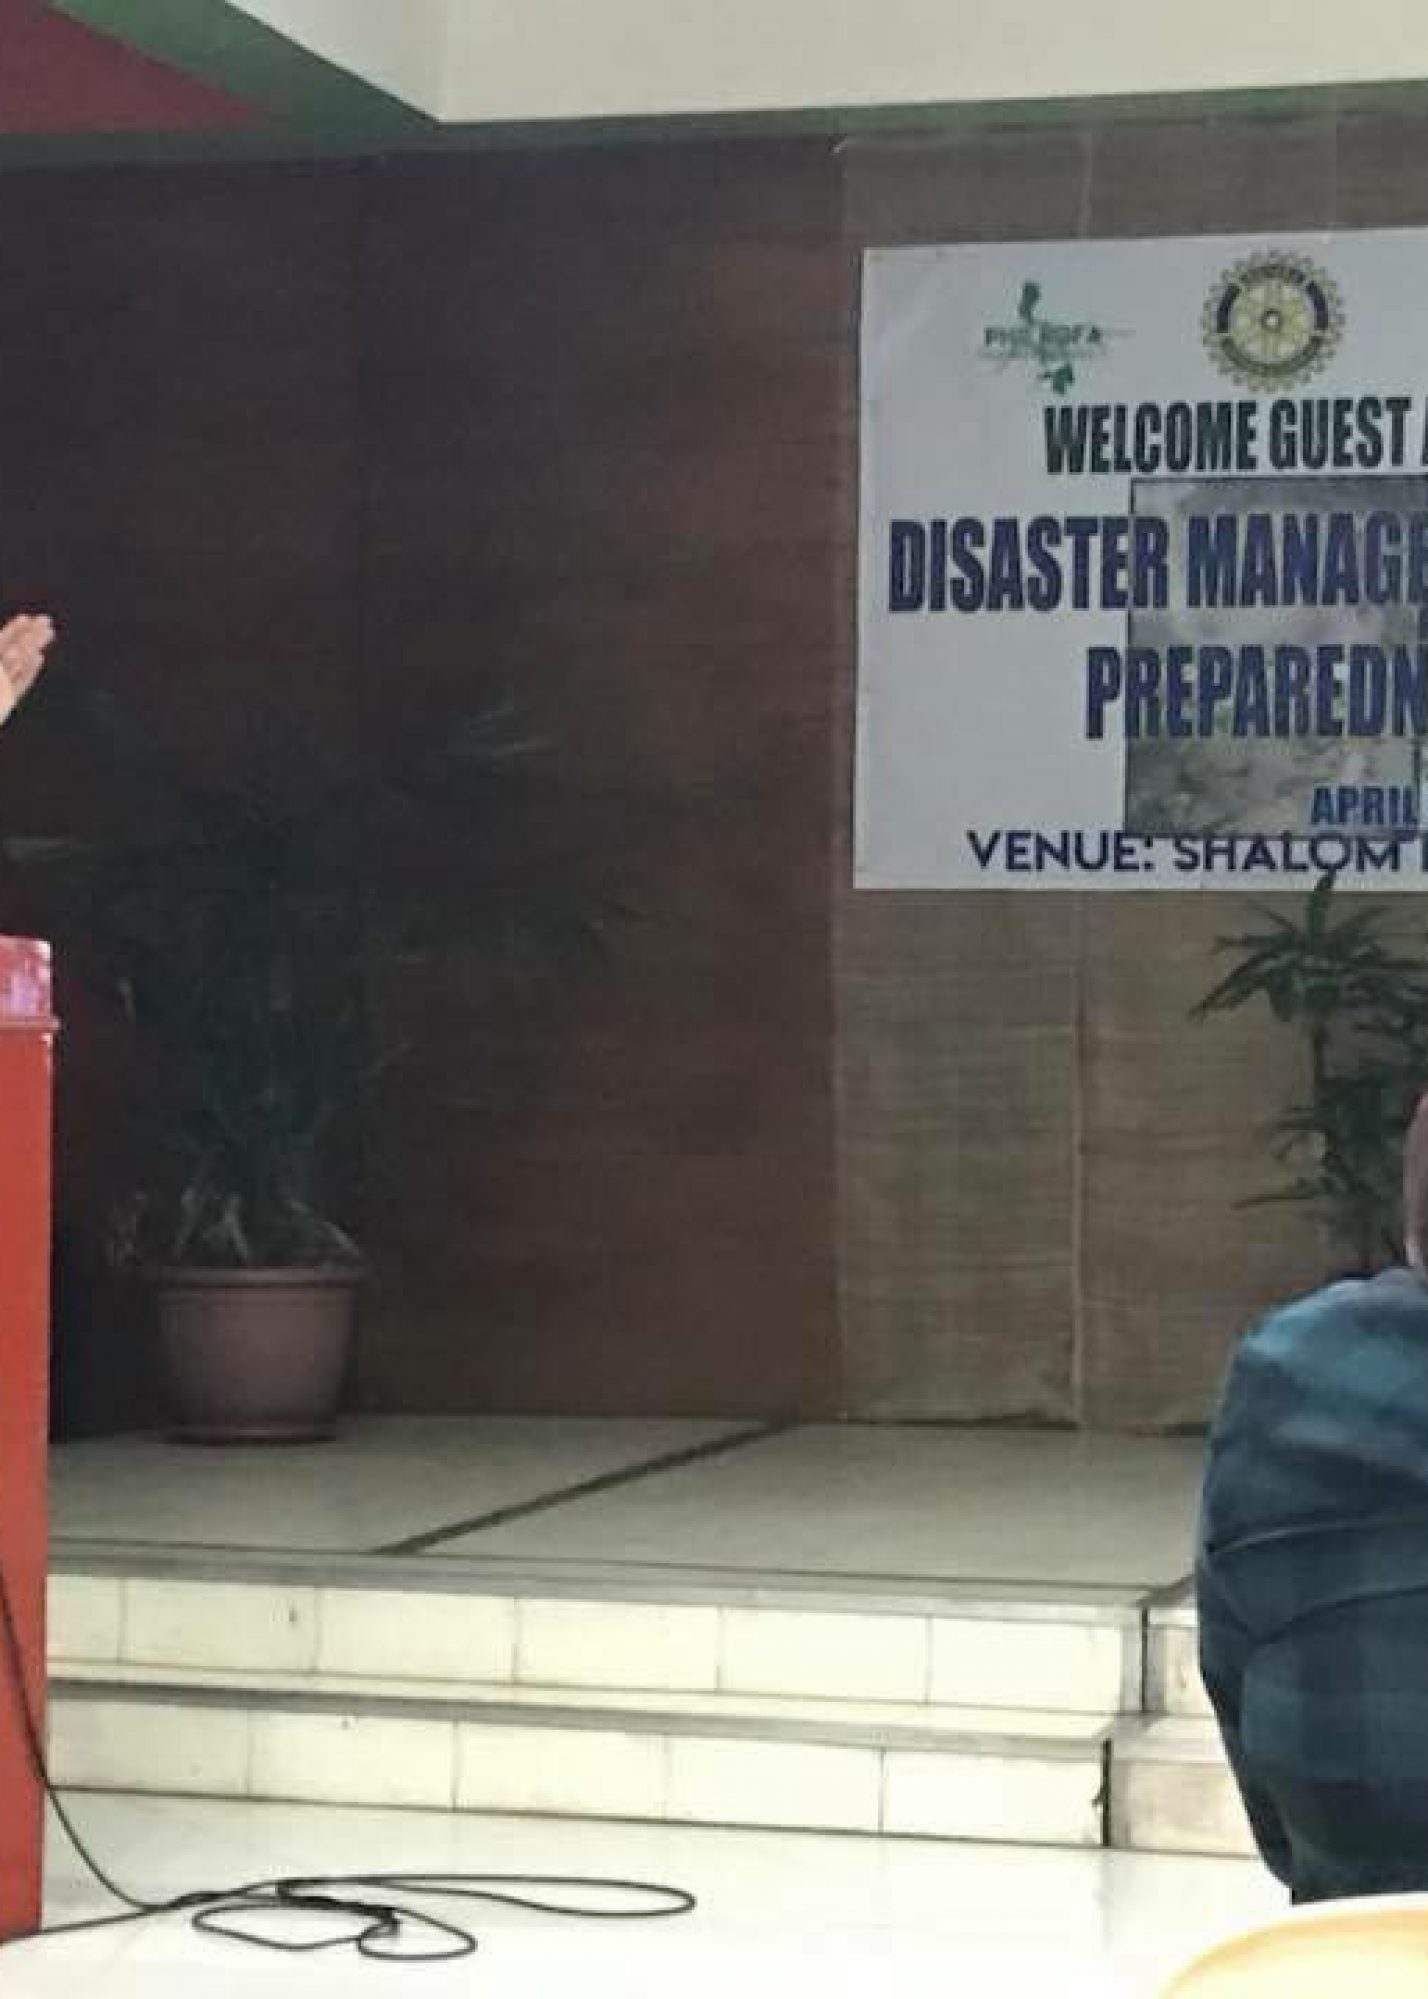 Knowledge Sharing on Disaster Management Response in NCR – April 28, 2018